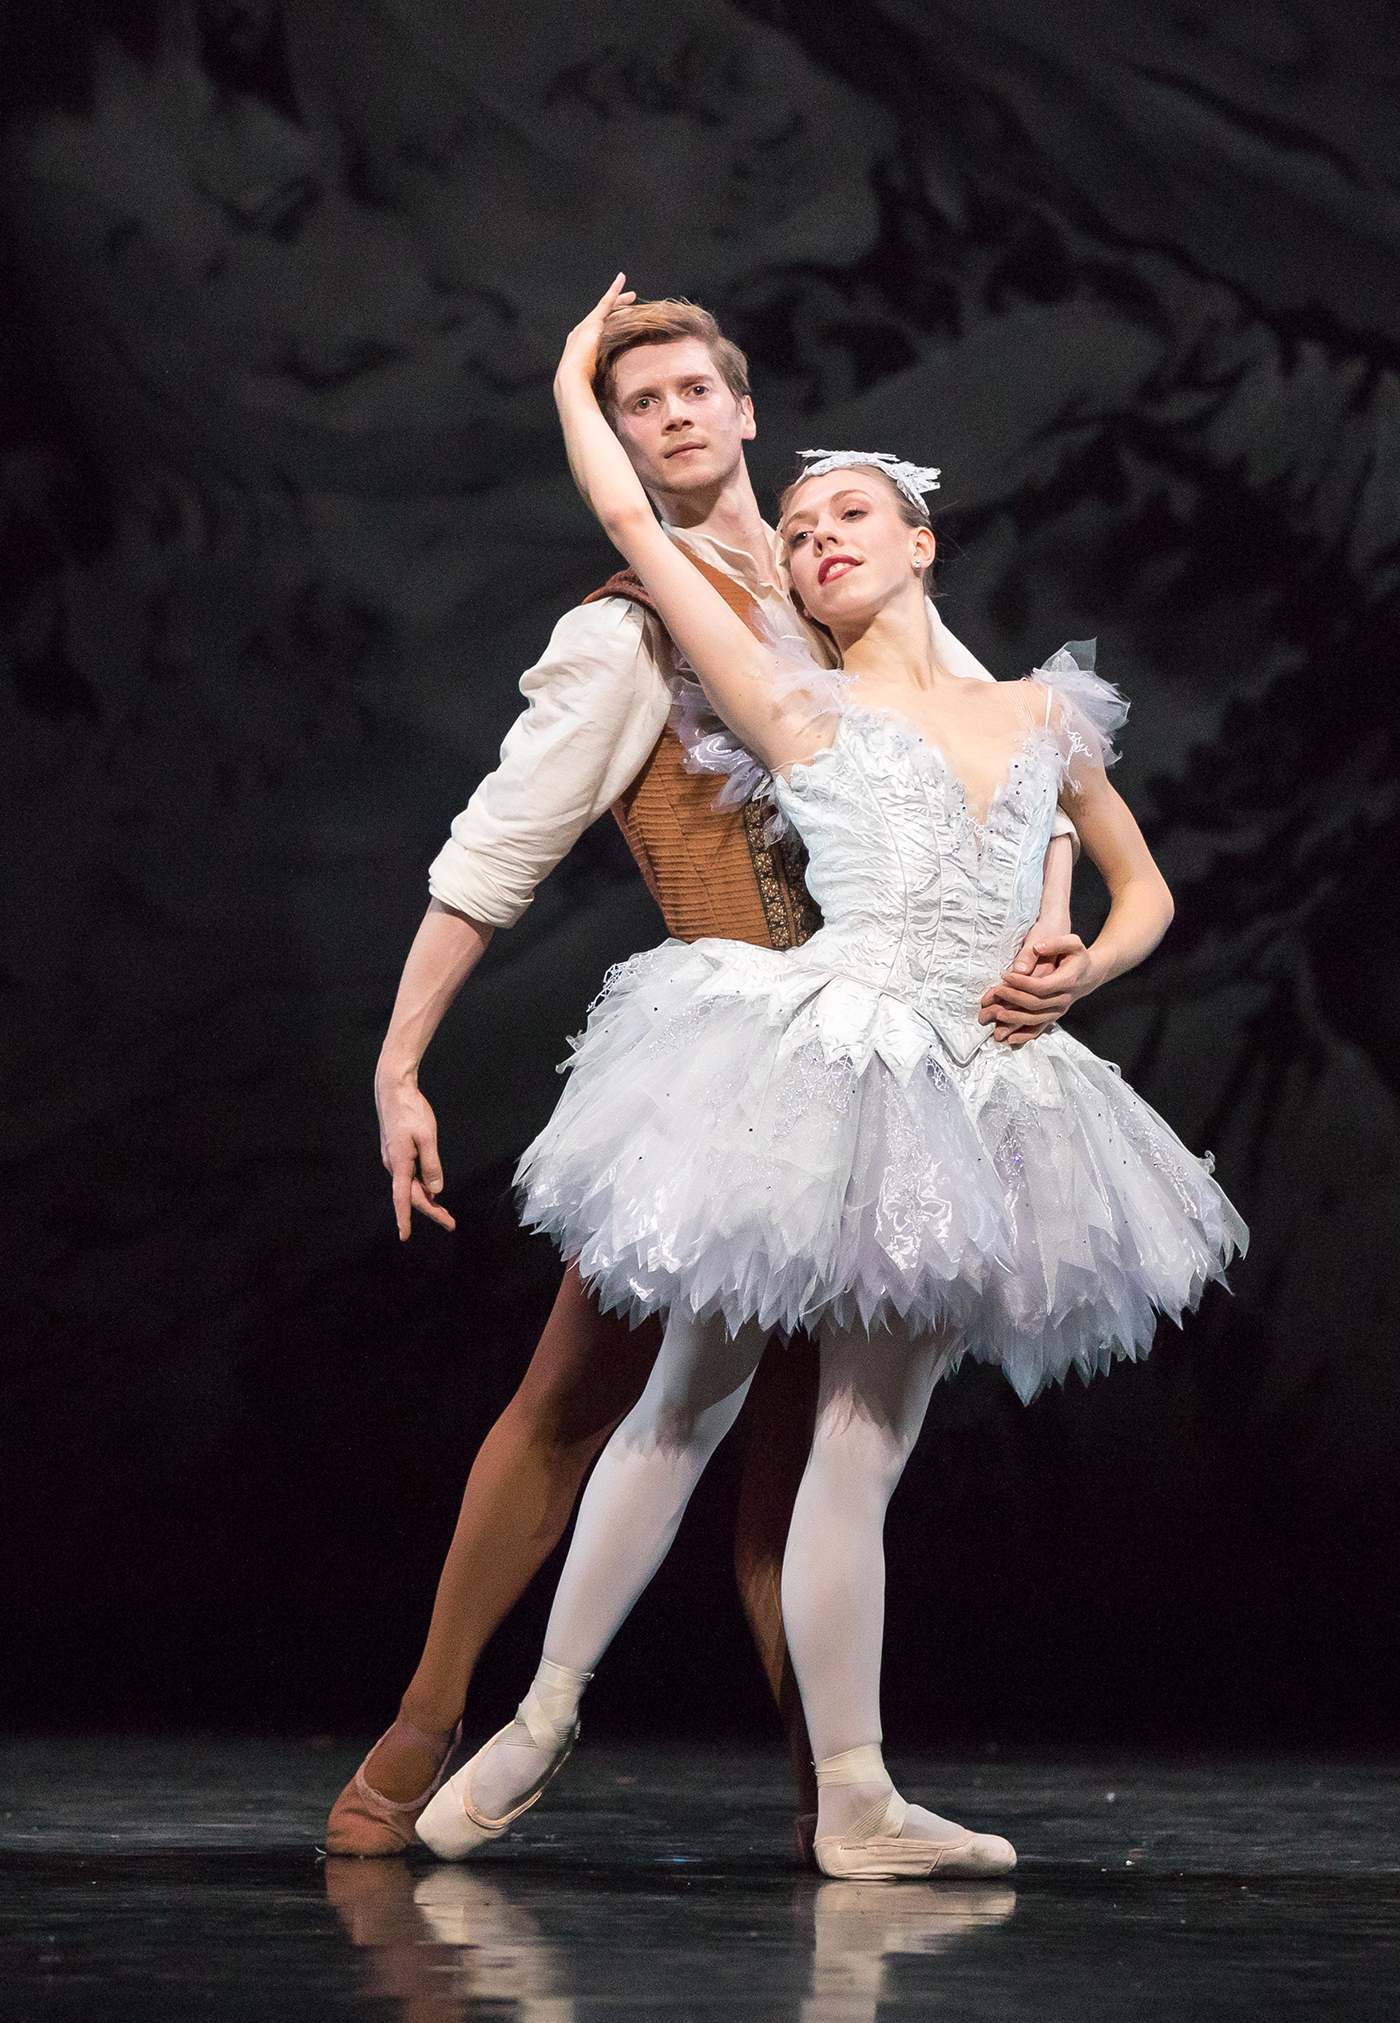 Scottish Ballet's Andrew Peasgood and Constance Devernay in Sir Kenneth MacMillan's The Fairy's Kiss. Photo by Andy Ross (2).jpg